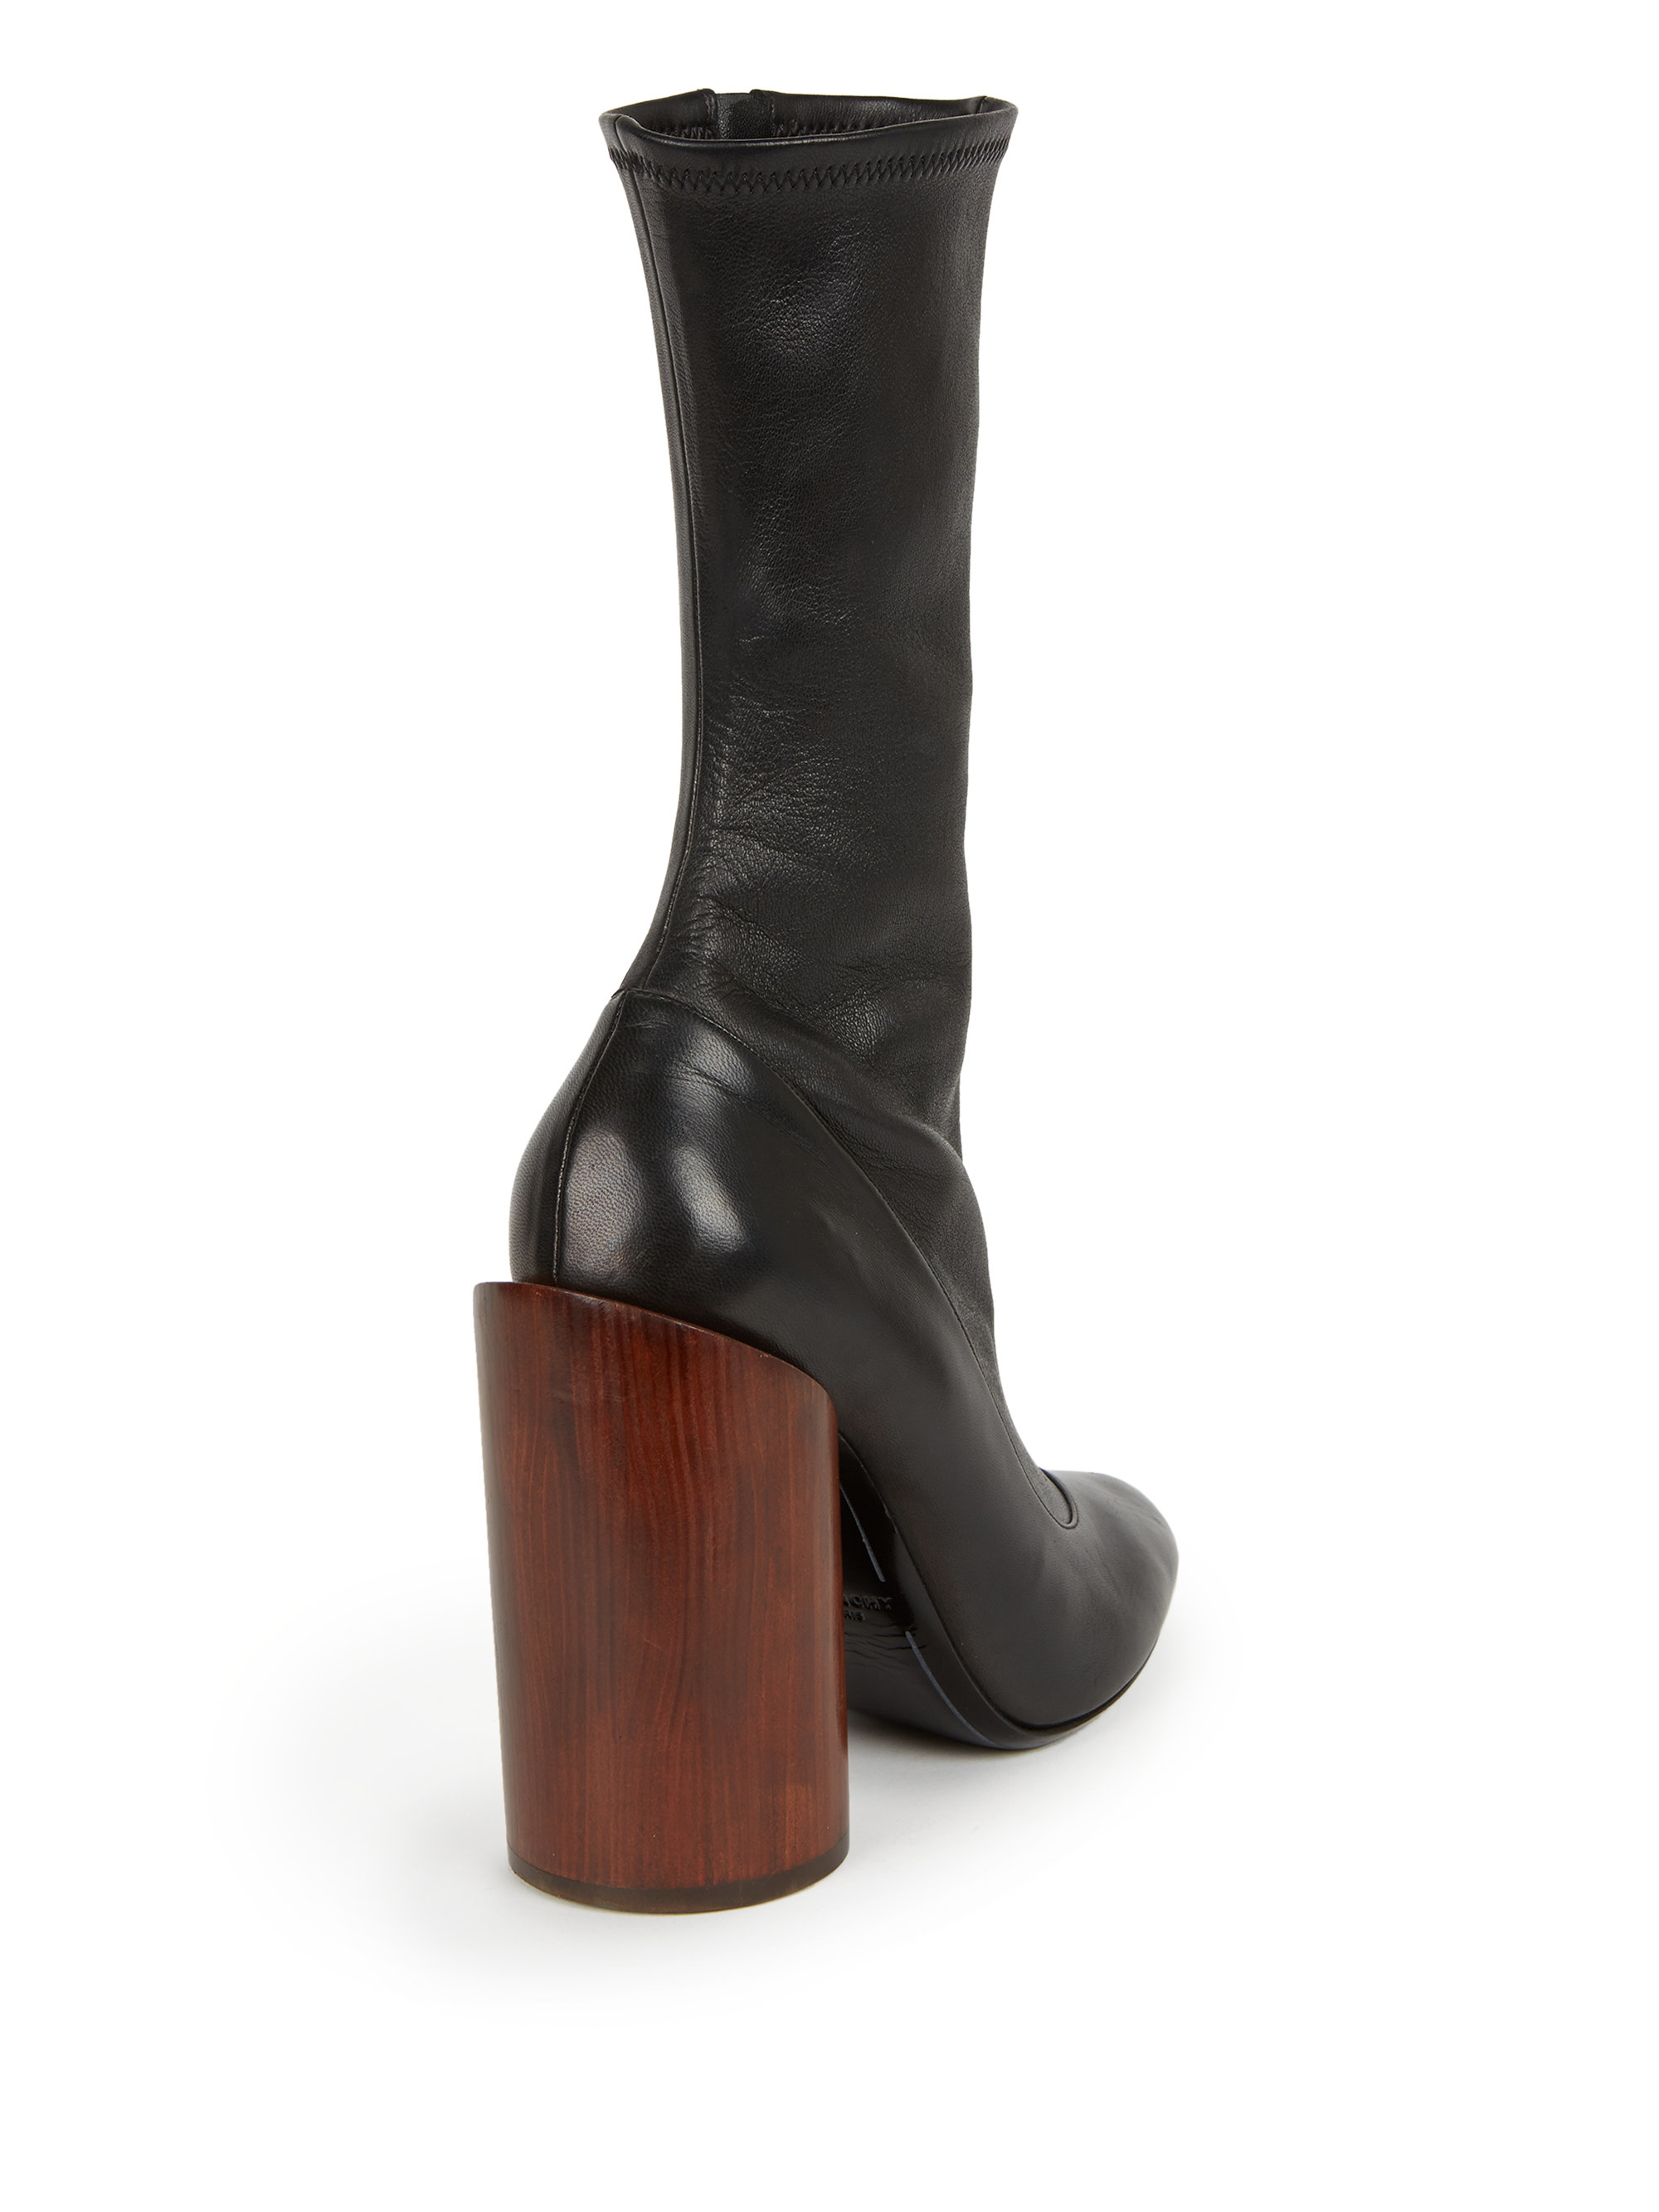 Lyst - Givenchy Lambskin Leather Wooden-heel Boots in Black b1667e169